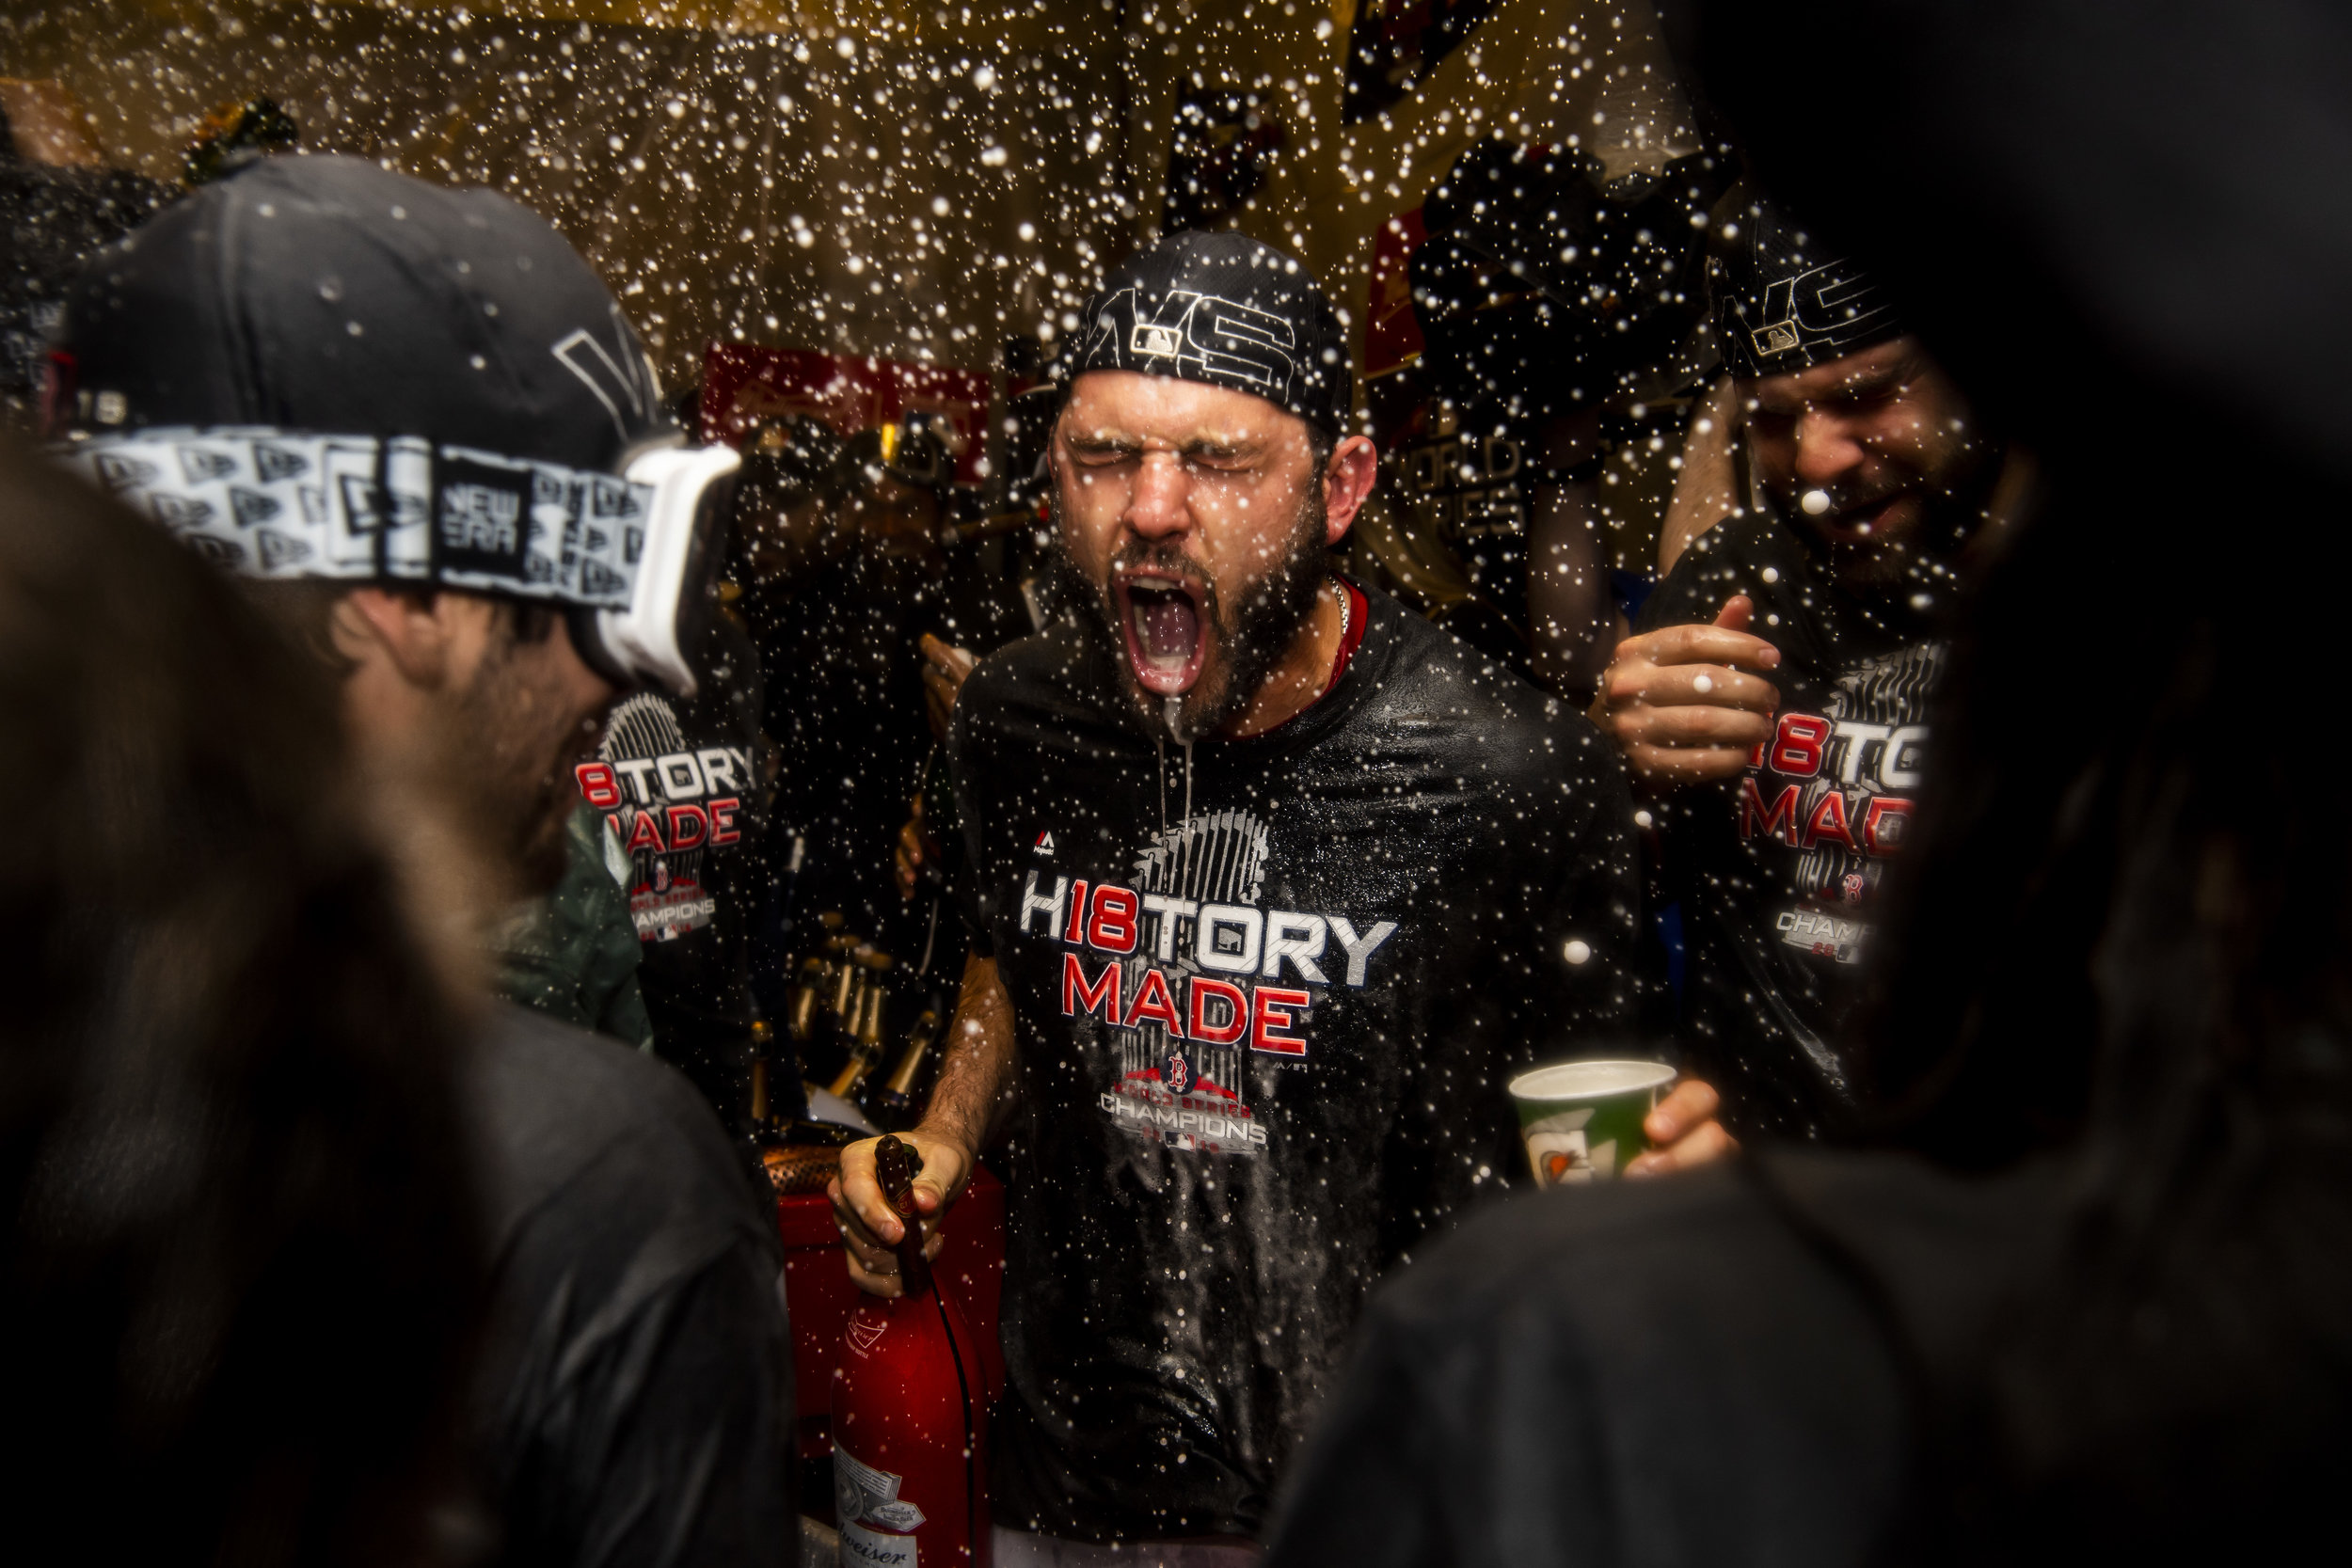 October 28, 2018, Los Angeles, Ca: Boston Red Sox second basemen Ian Kinsler sprays champagne after the Boston Red Sox defeated the Los Angeles Dodgers in Game 5 to win the World Series at Dodger Stadium in Los Angeles, California on Saturday, October 28, 2018. (Photo by Matthew Thomas/Boston Red Sox)